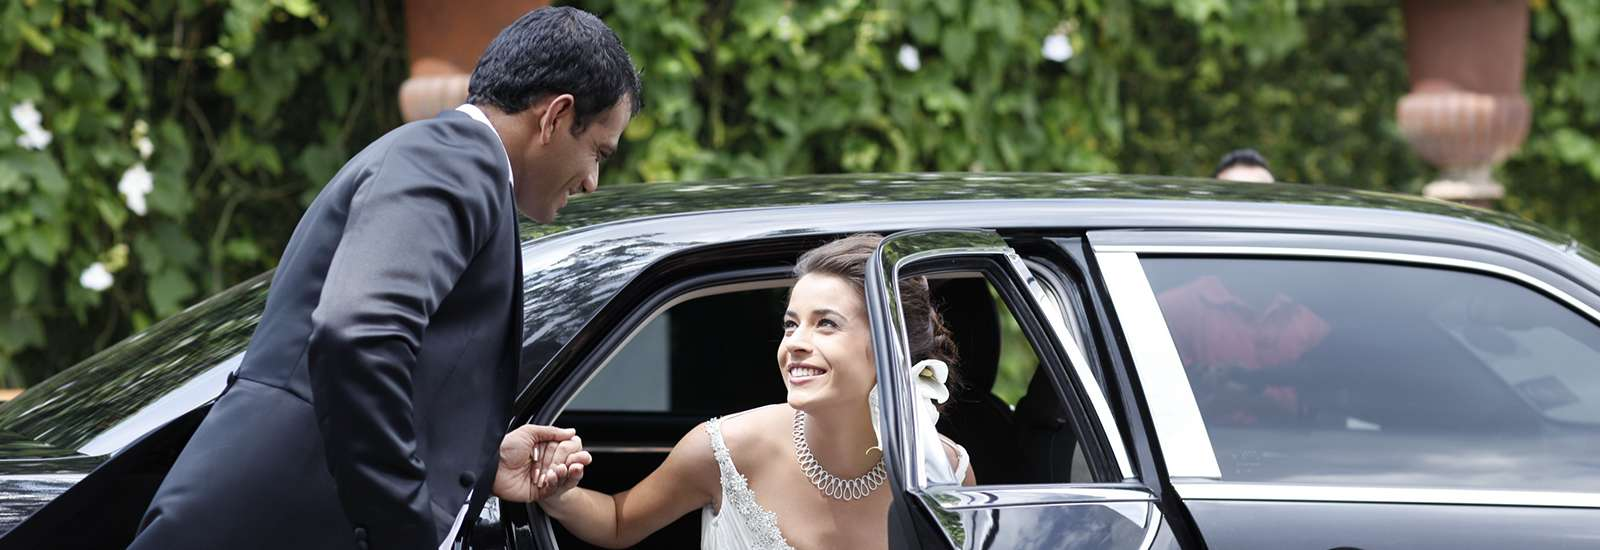 Wedding car rental services in Sri Lanka